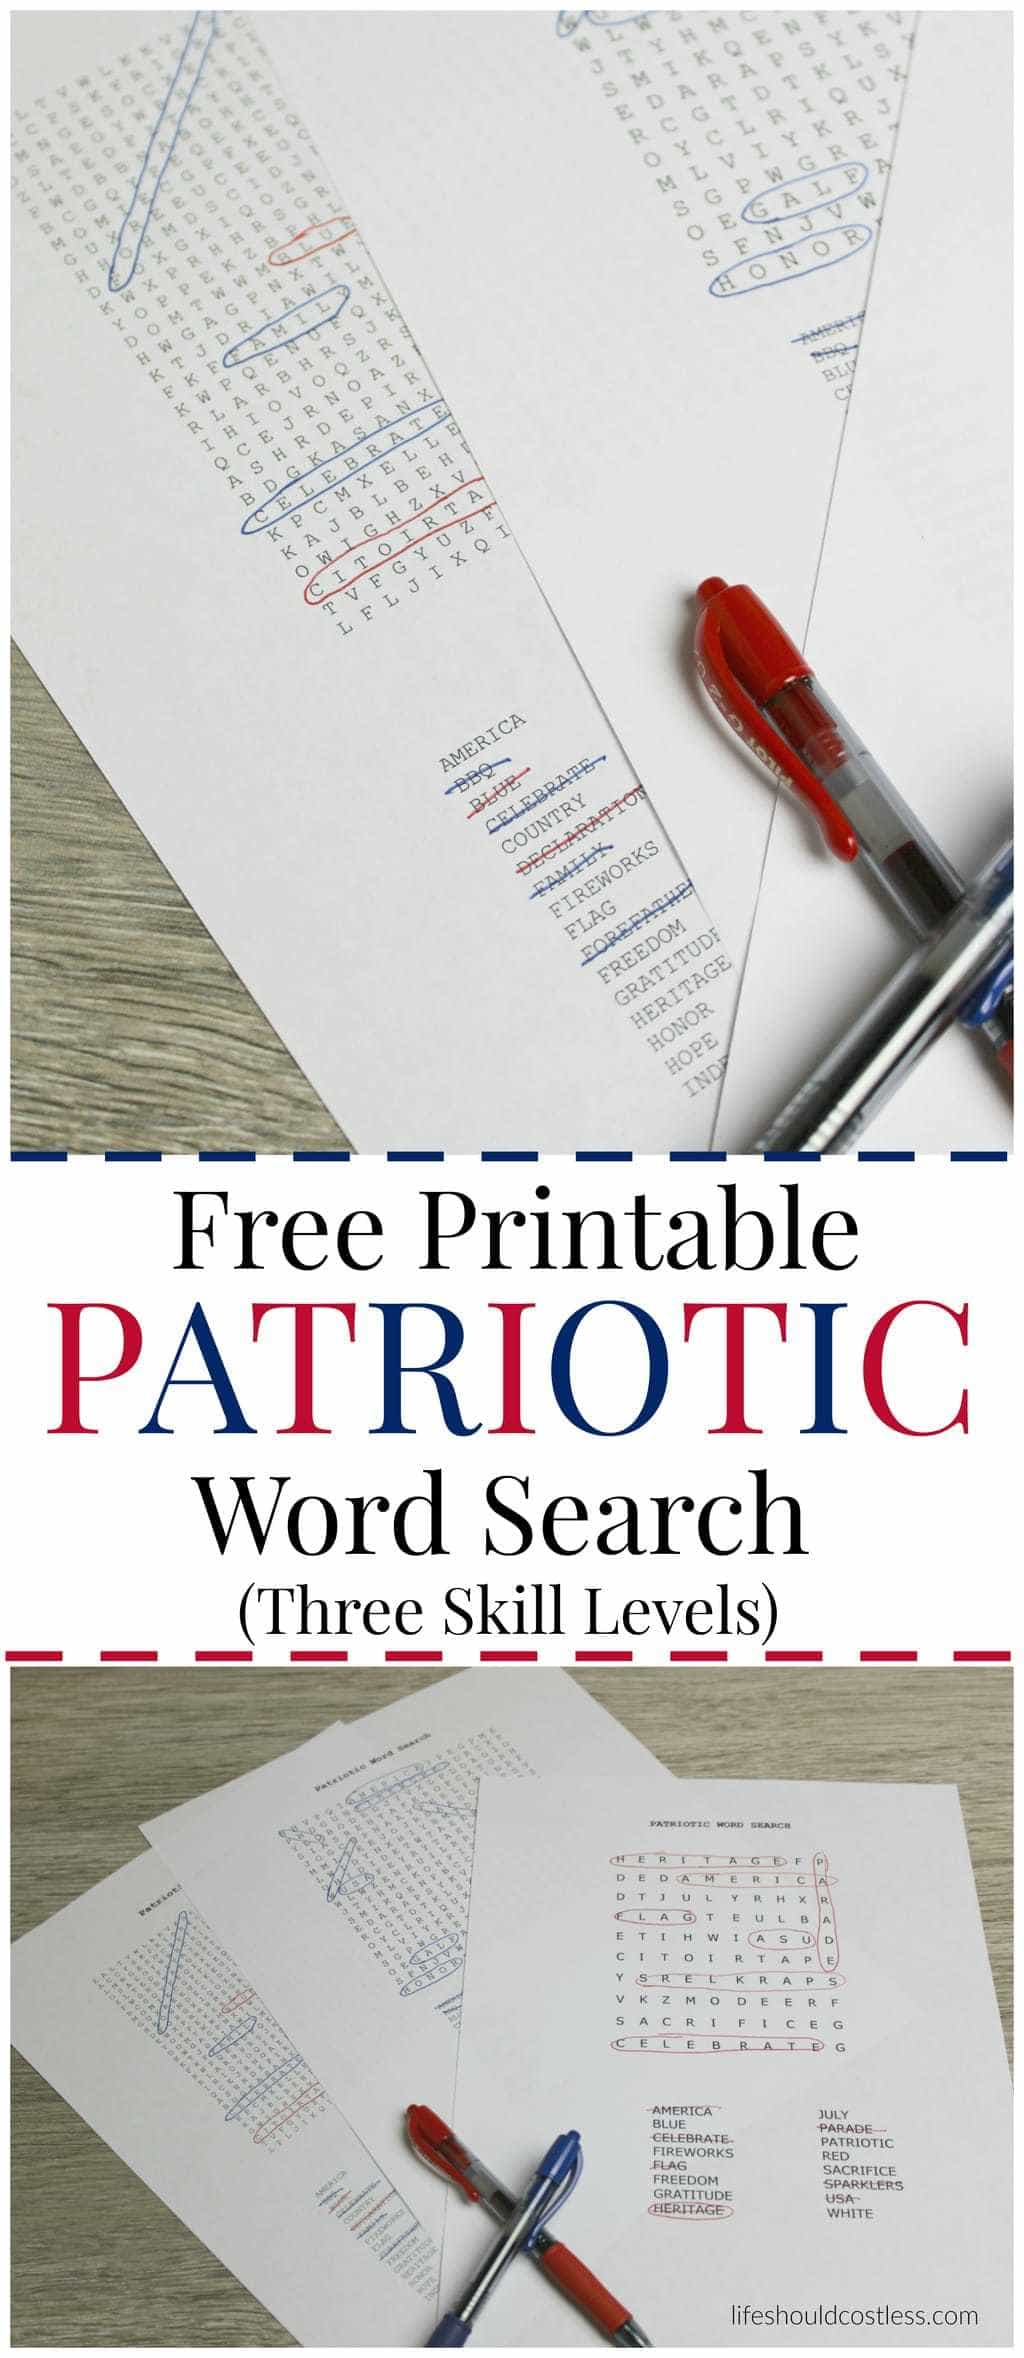 Free Printable Patriotic Word Search, with three different skill levels. Keep everyone busy between activities.